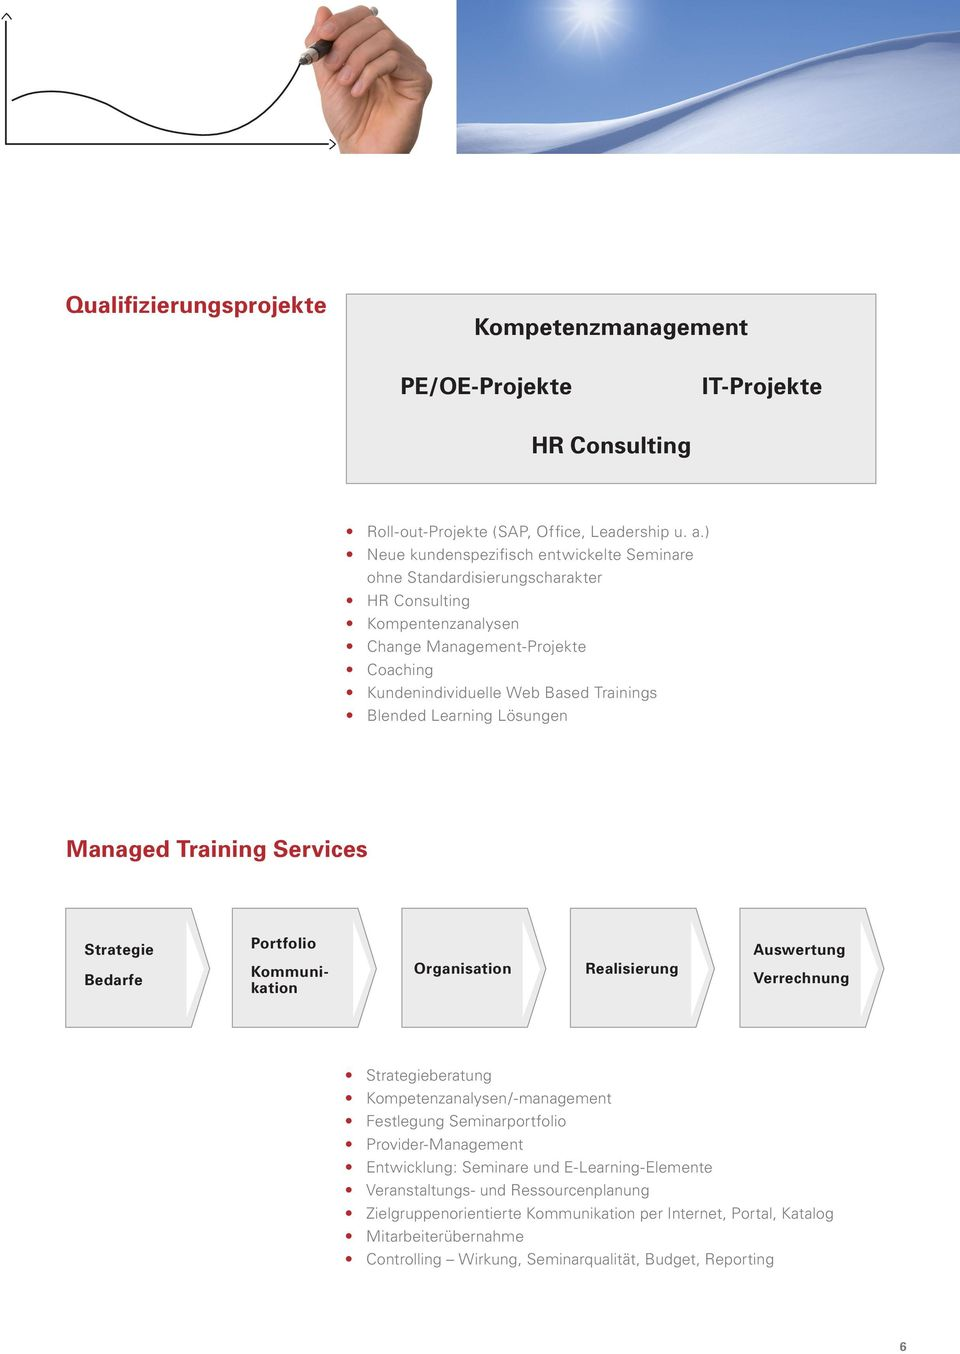 Learning Lösungen Managed Training Services Strategie Bedarfe Portfolio Kommunikation Organisation Realisierung Auswertung Verrechnung Strategieberatung Kompetenzanalysen/-management Festlegung